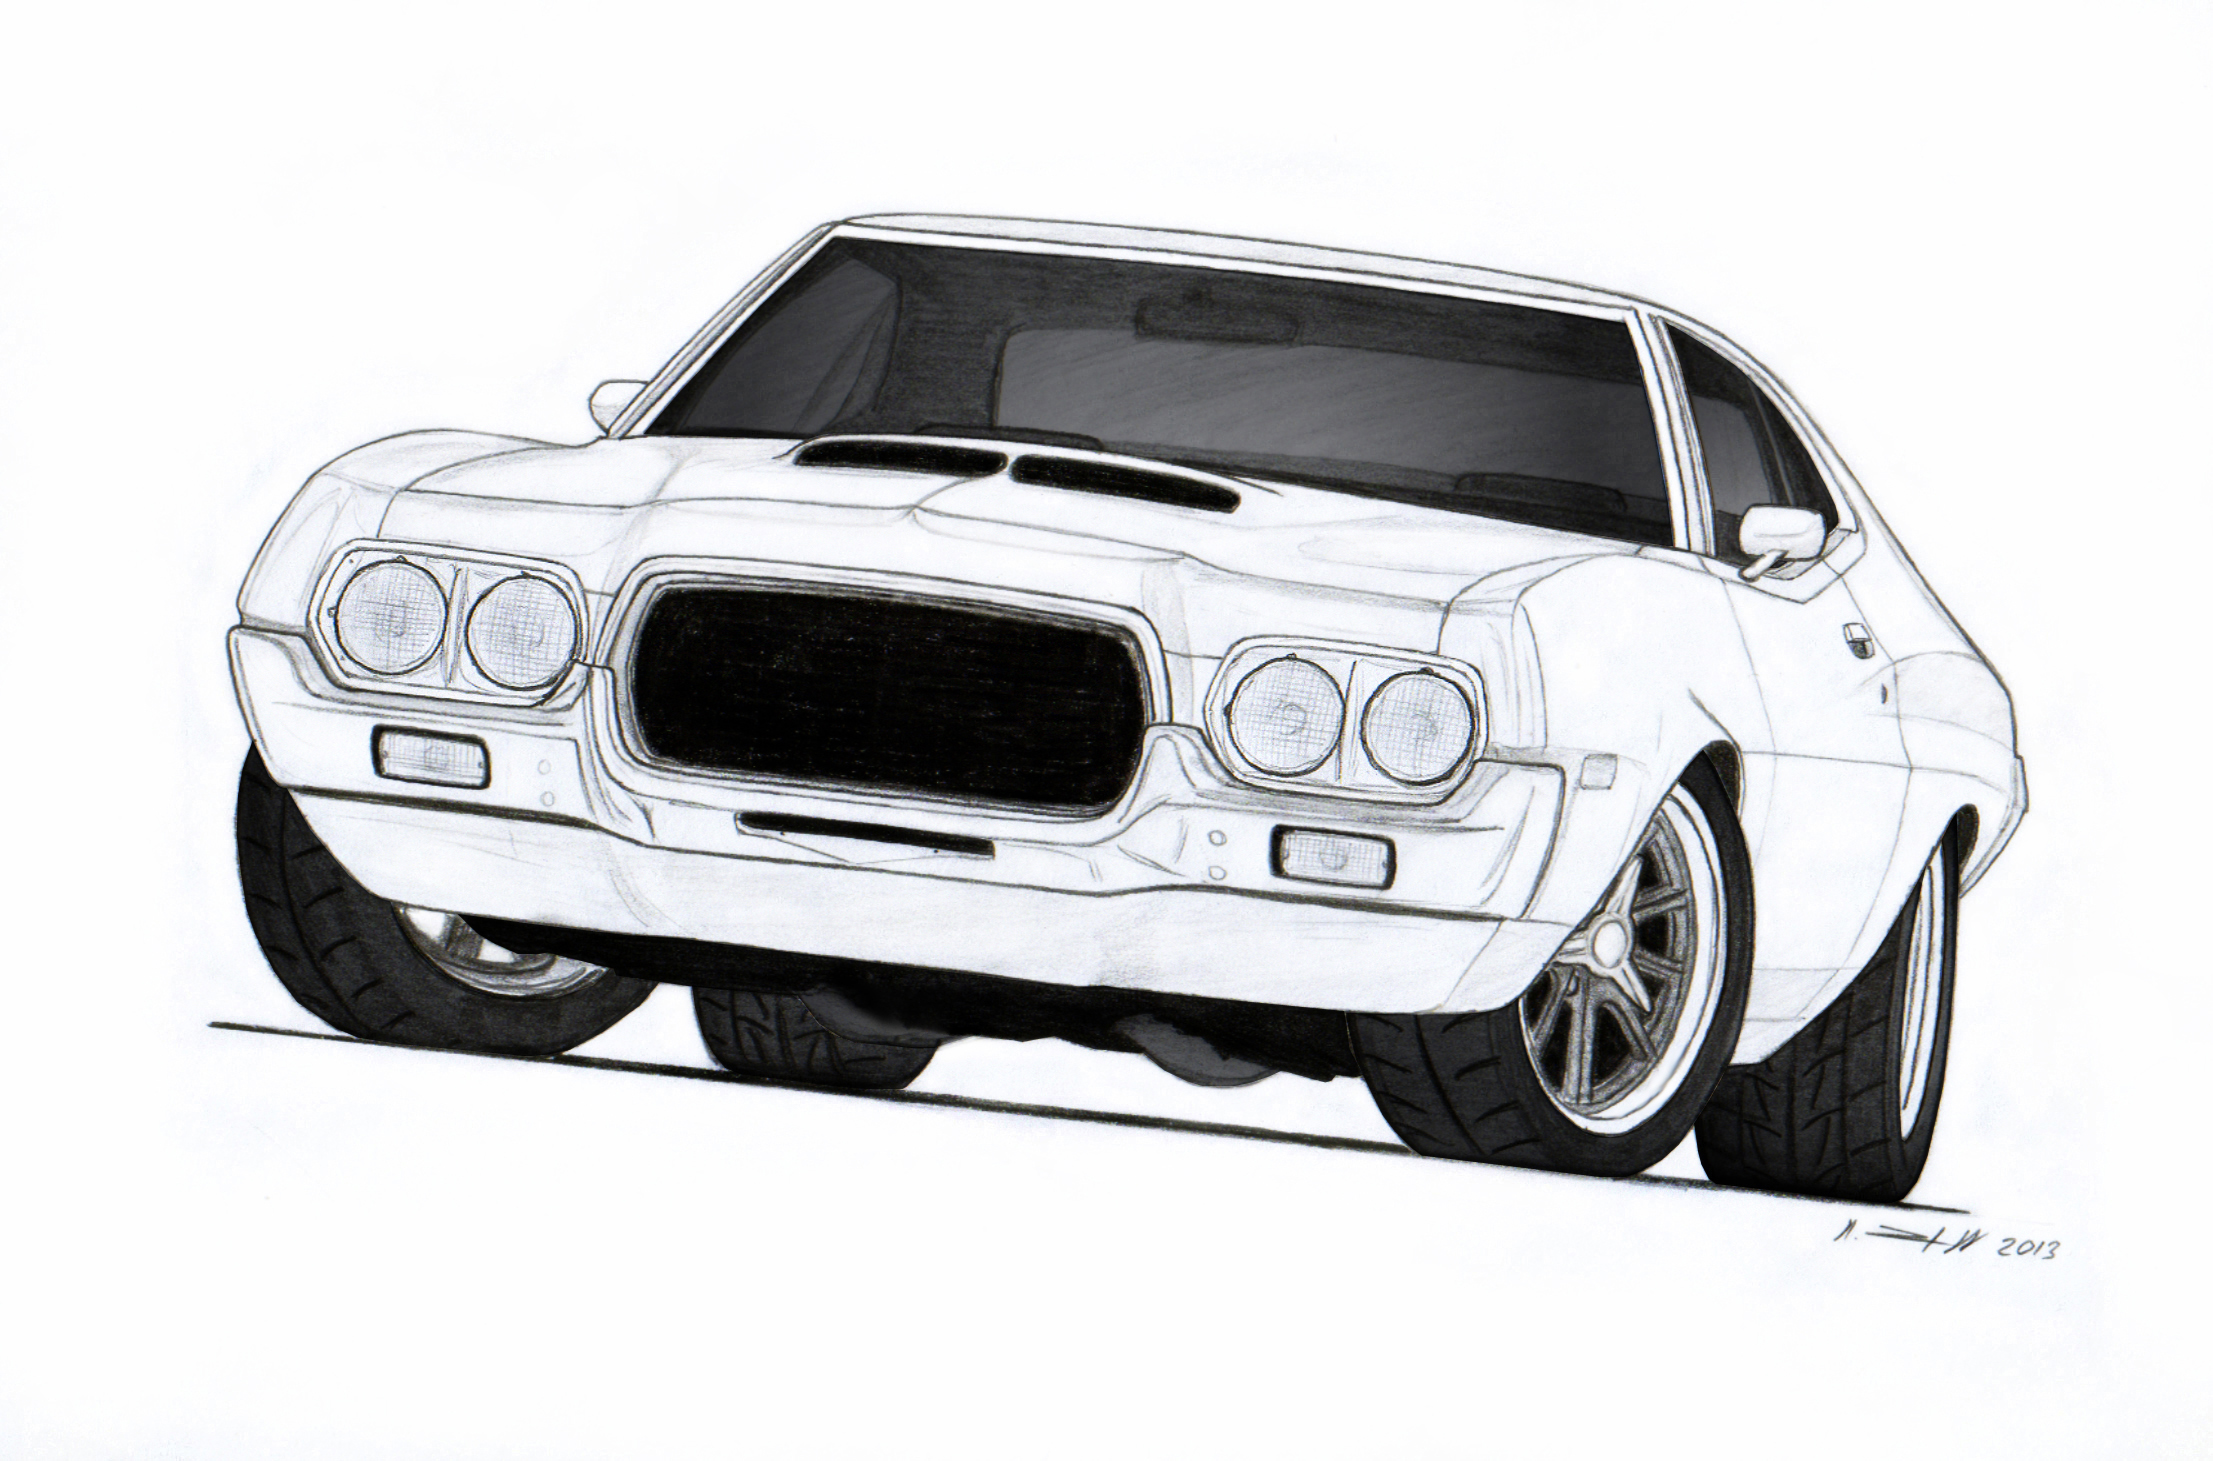 1972 Ford Torino Drawing By Vertualissimo On Deviantart